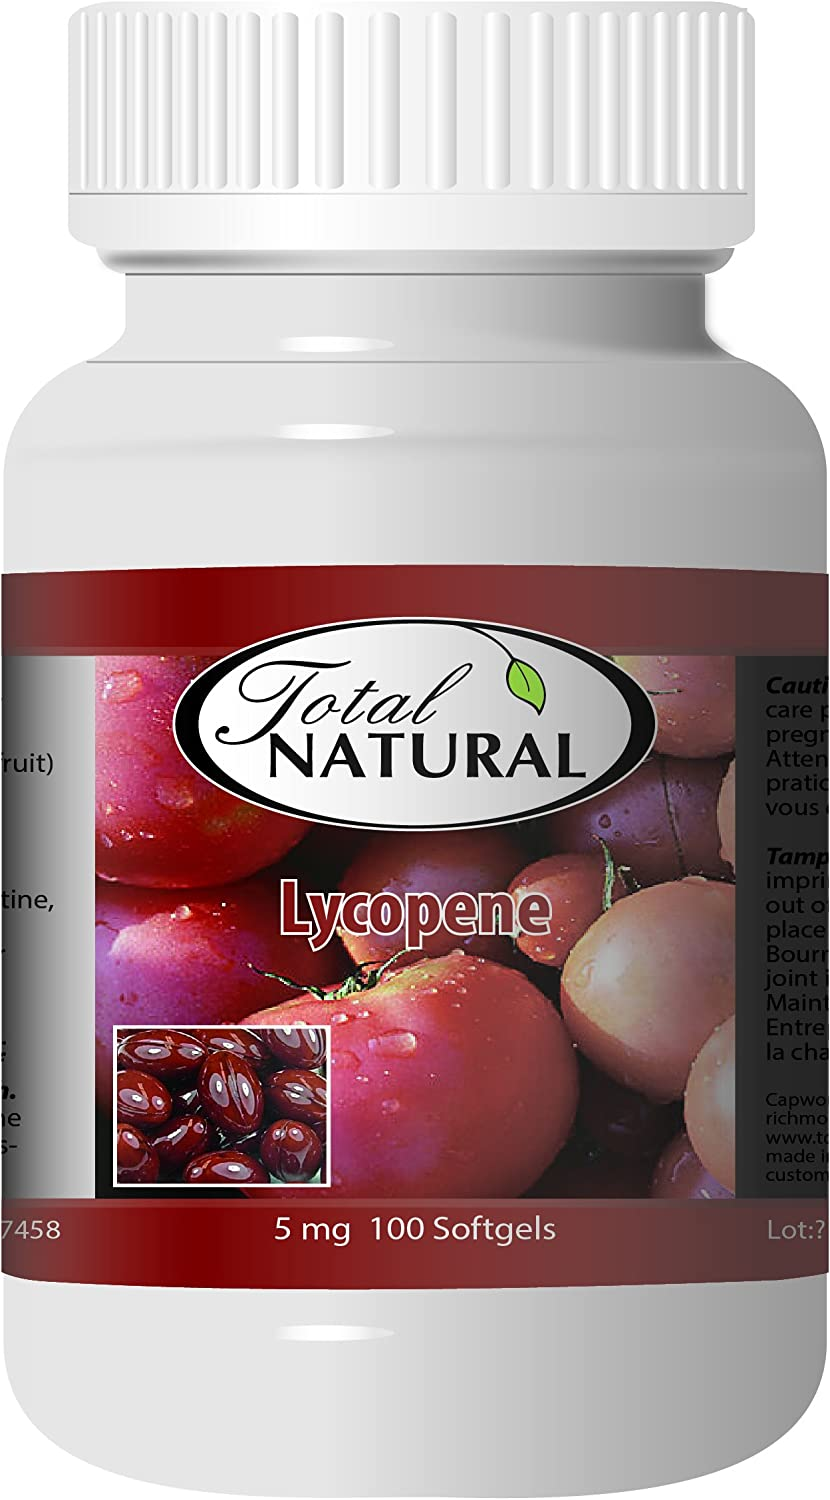 Sale special price Lycopene Supplement 5mg 100s 2 Natural by Sales for sale Bottles Total Best